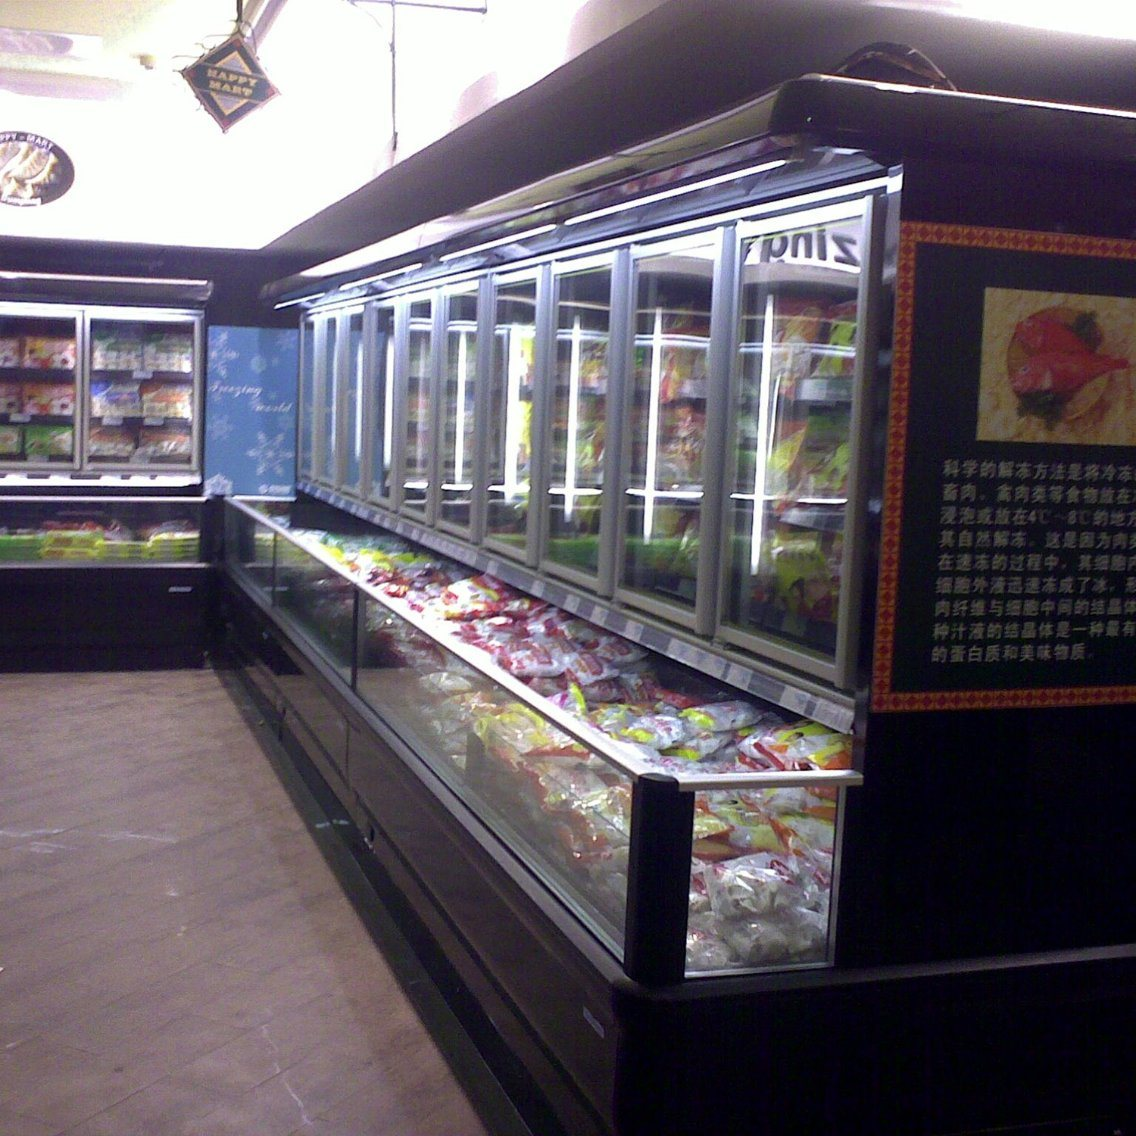 Commercial Automatic Defrost Upright Combine Freezer and Refrigerator for Supermarket